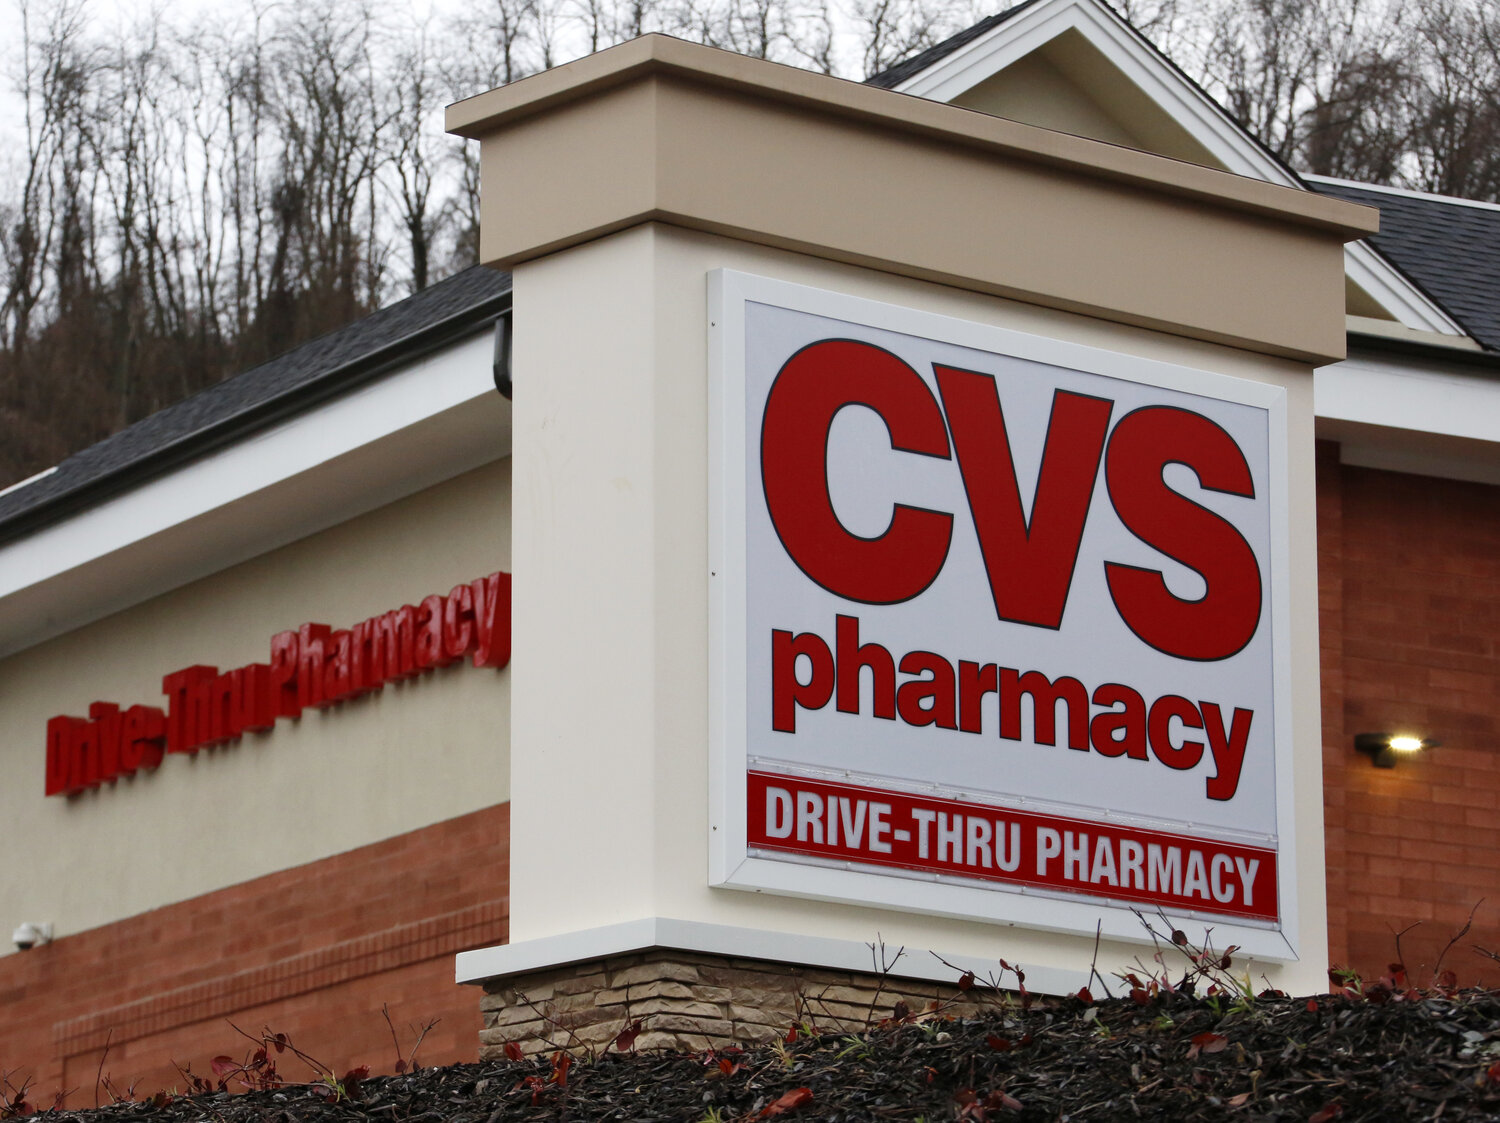 With Aetna Deal, CVS Looks To Turn Stores Into Health Care Hubs